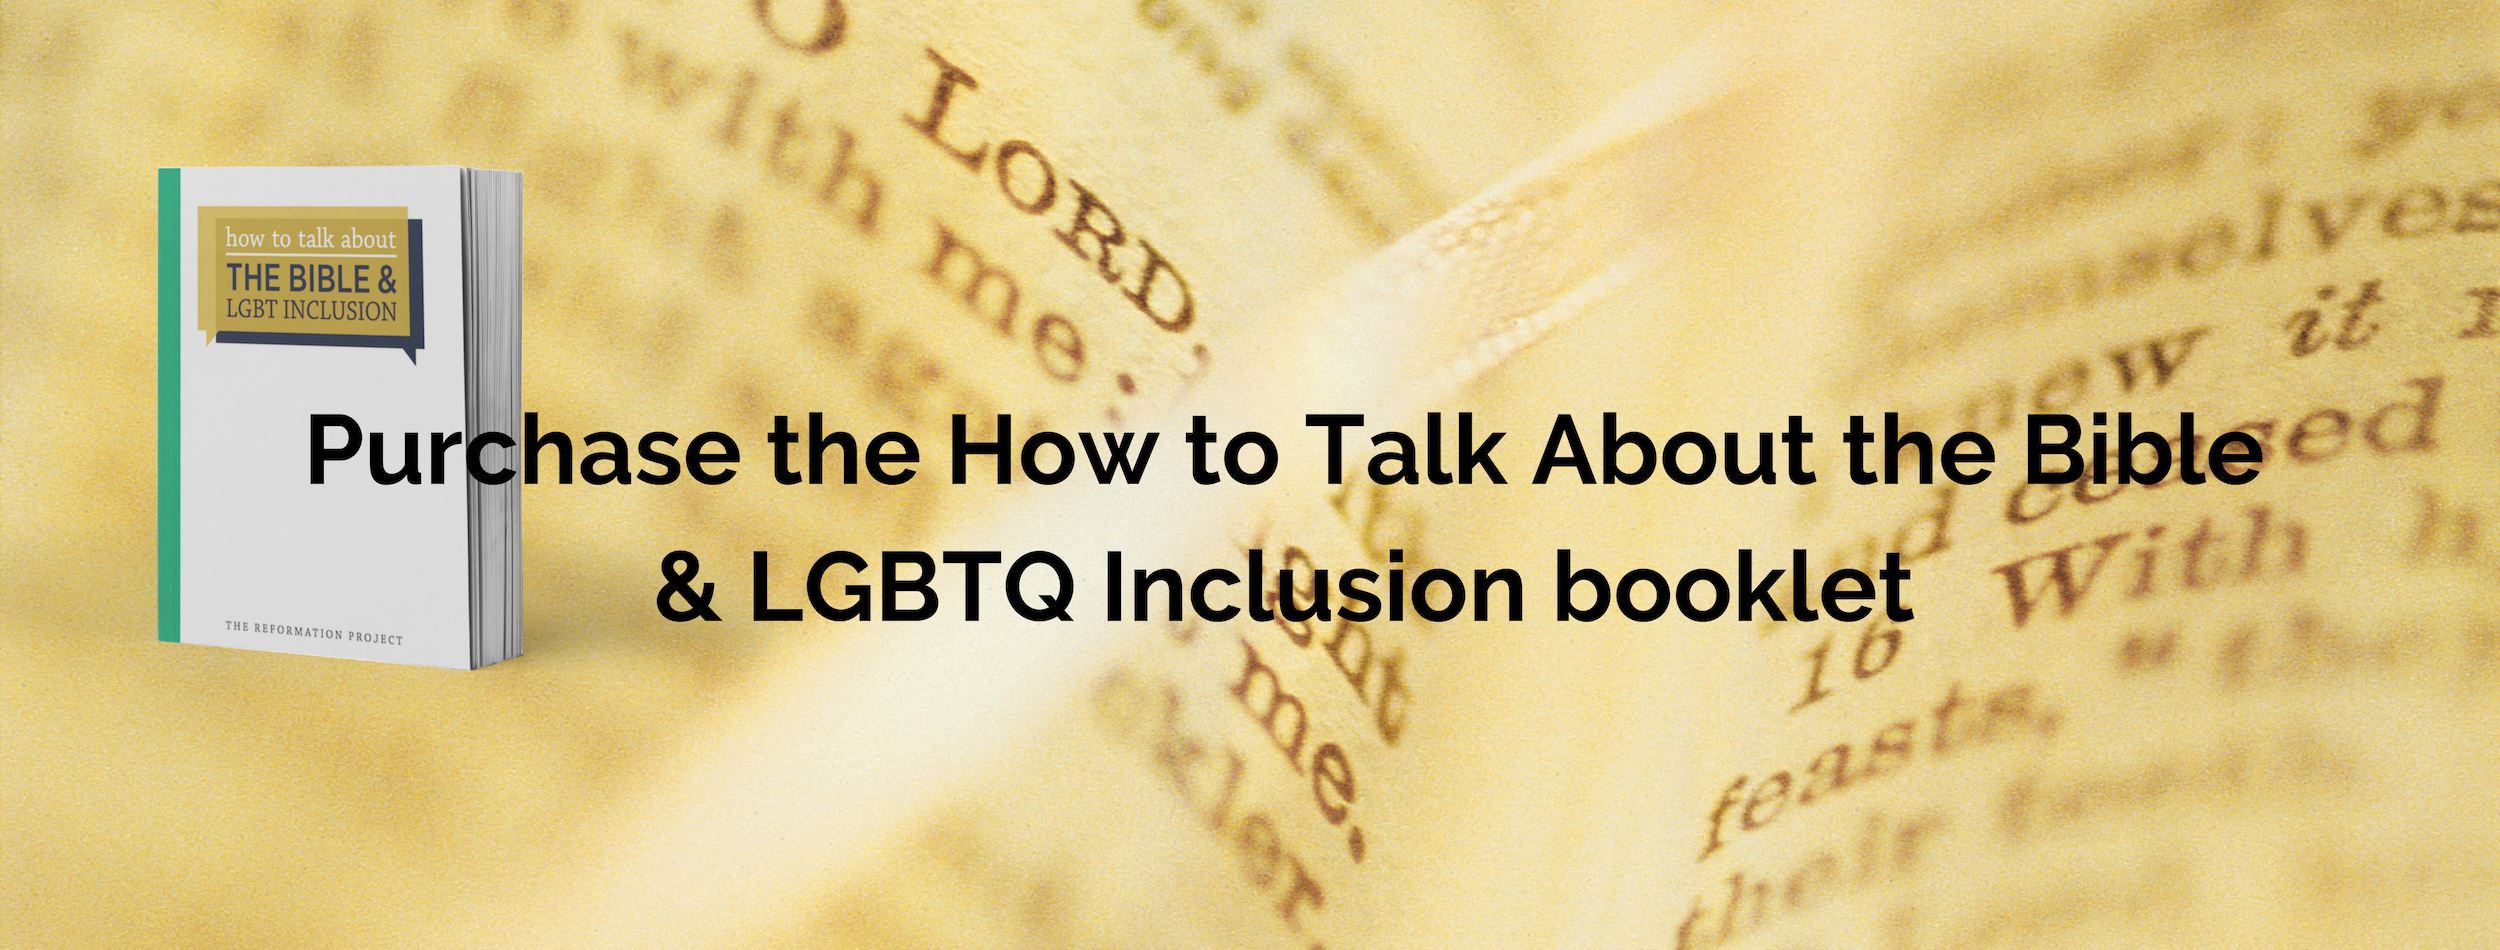 Purchase the How to Talk About the Bible & LGBTQ Inclusion Booklet.png